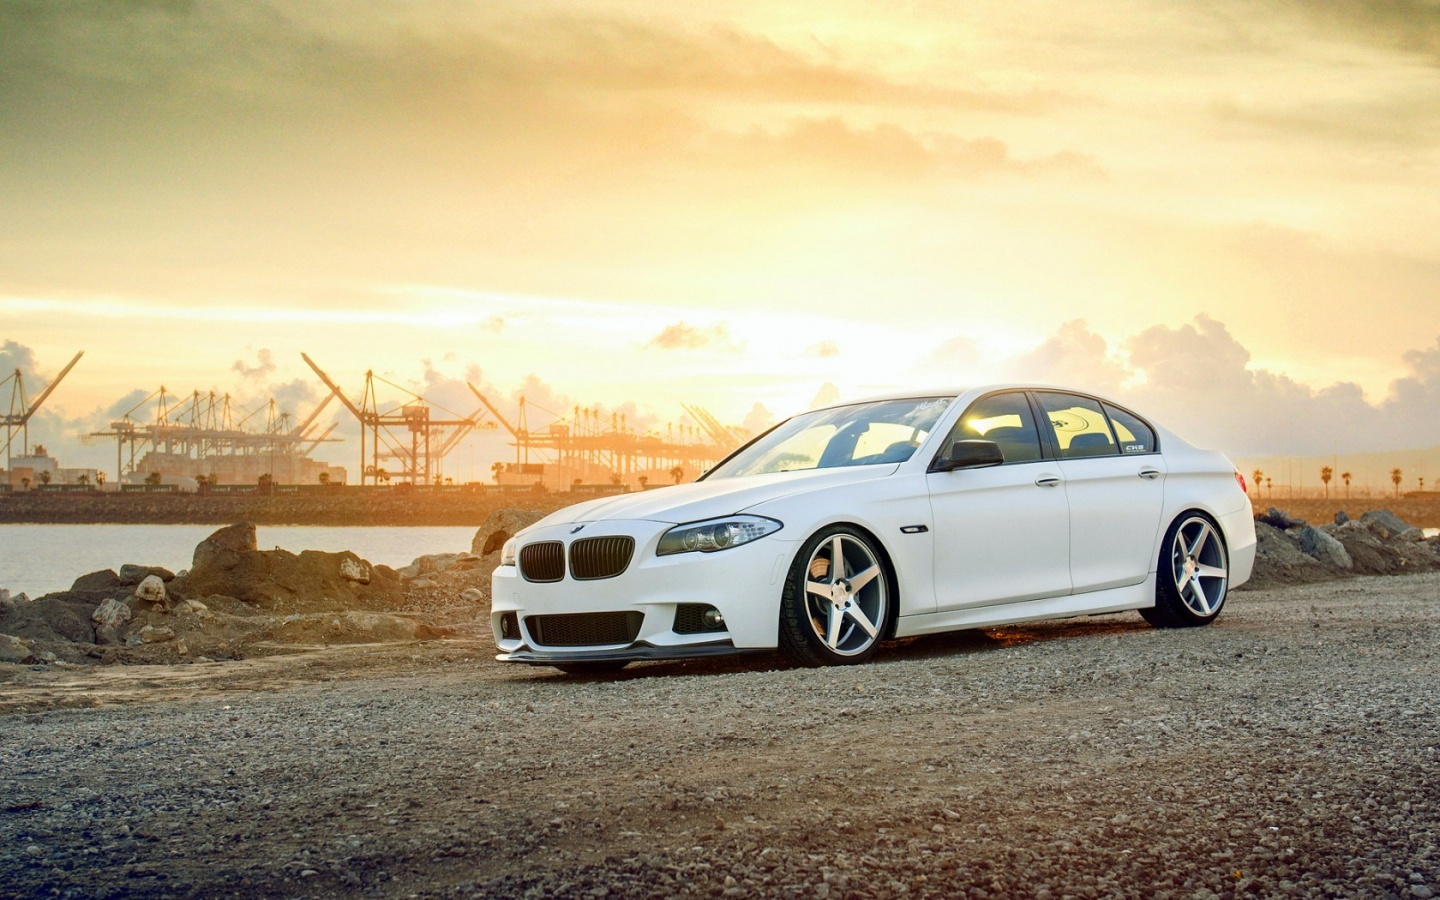 Bmw F10 550i Car Tuning Parking Road Wallpapers 1440x900